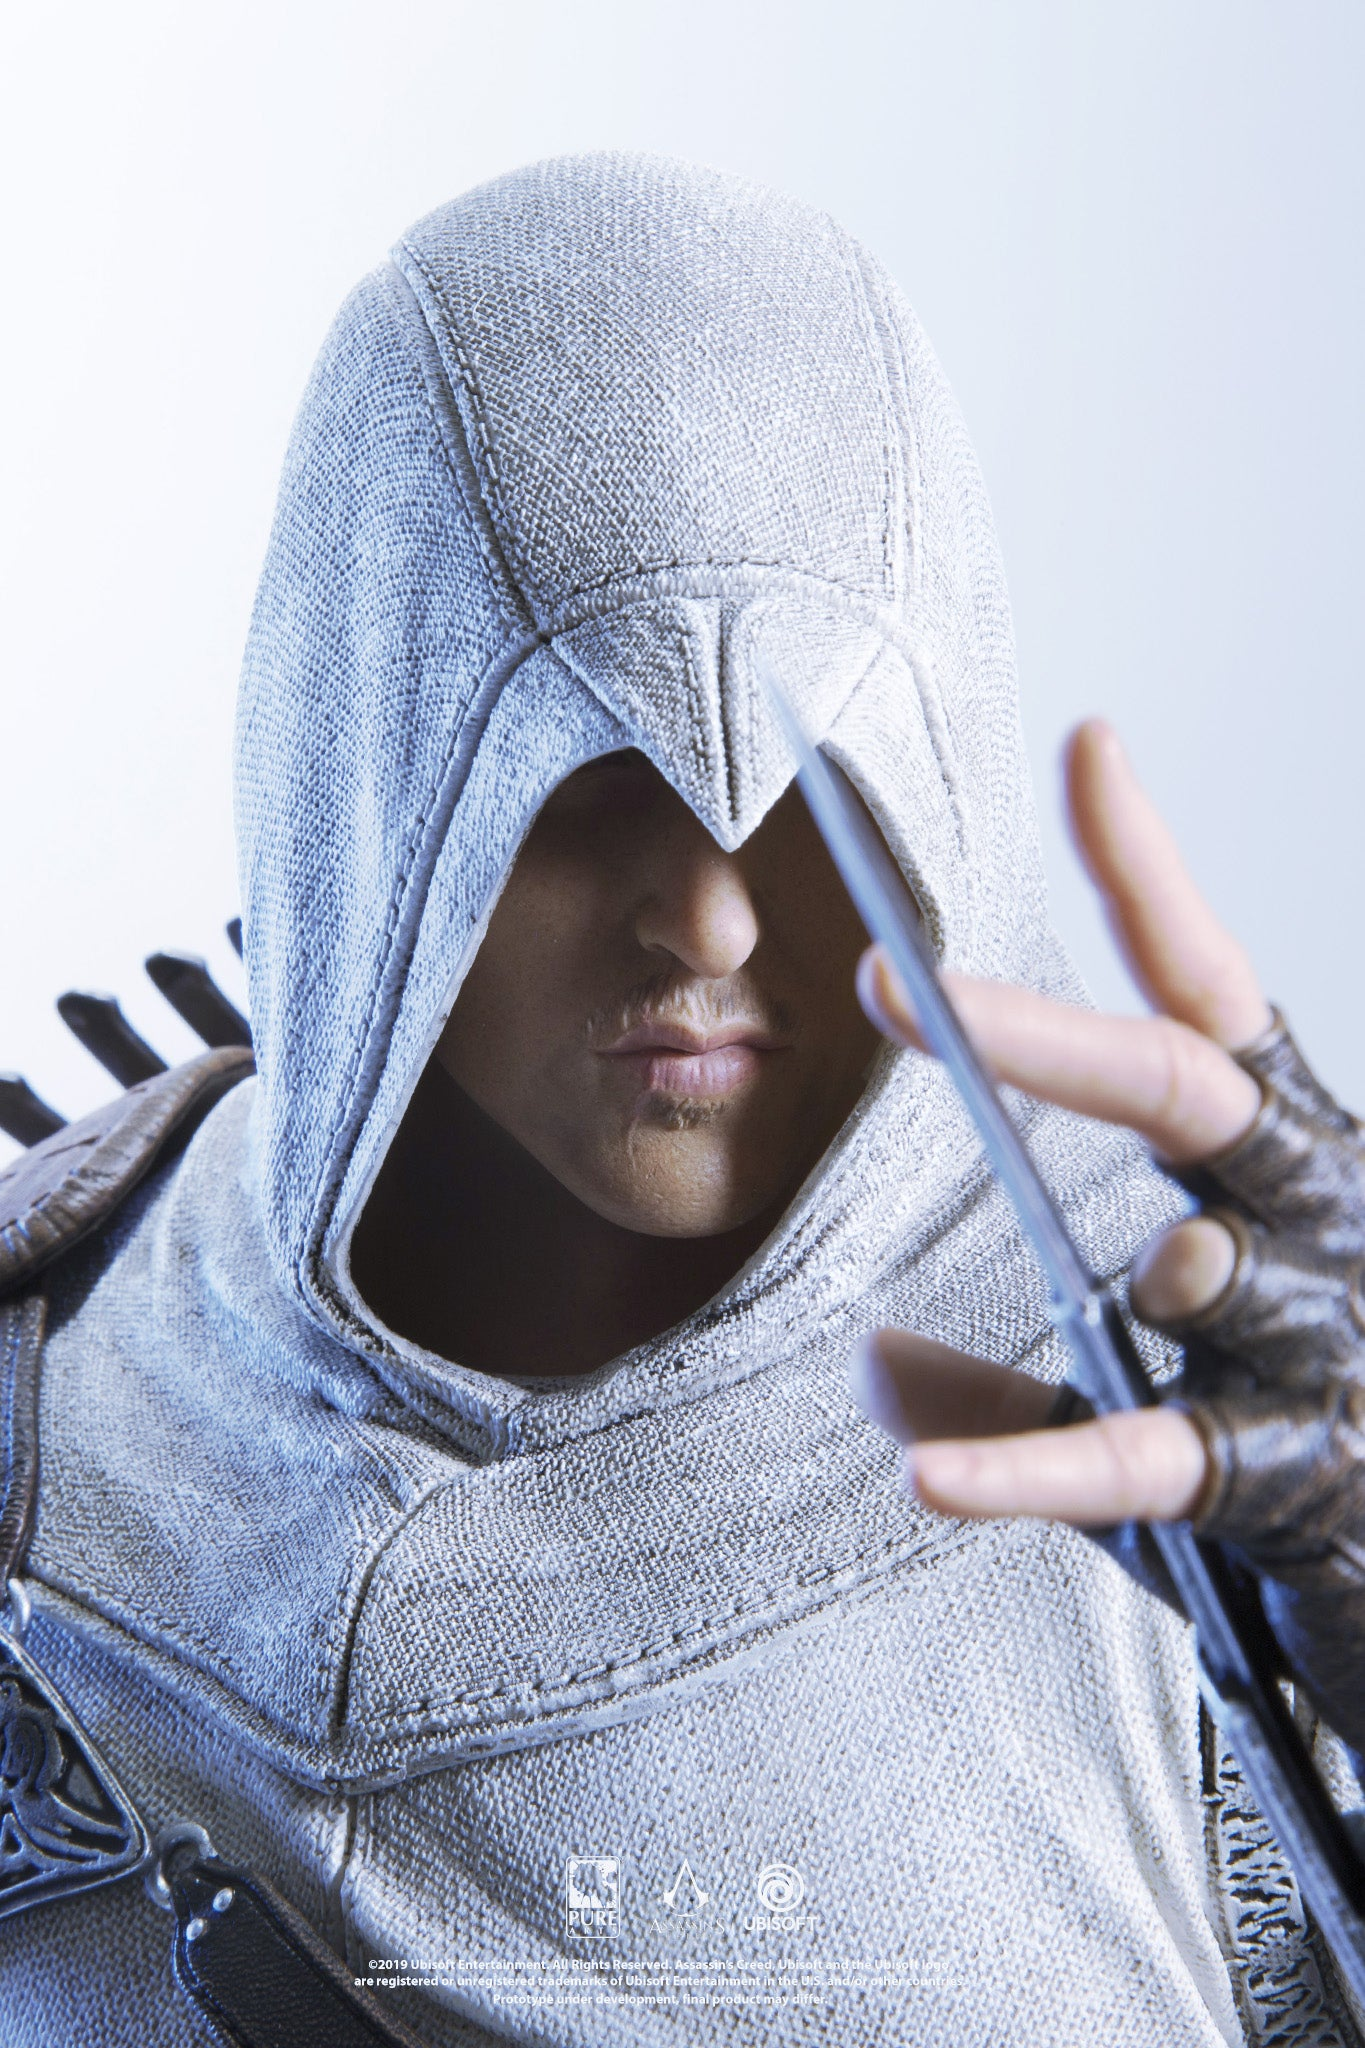 Ubisoft S Assassin S Creed Animus Altair Statue Purearts